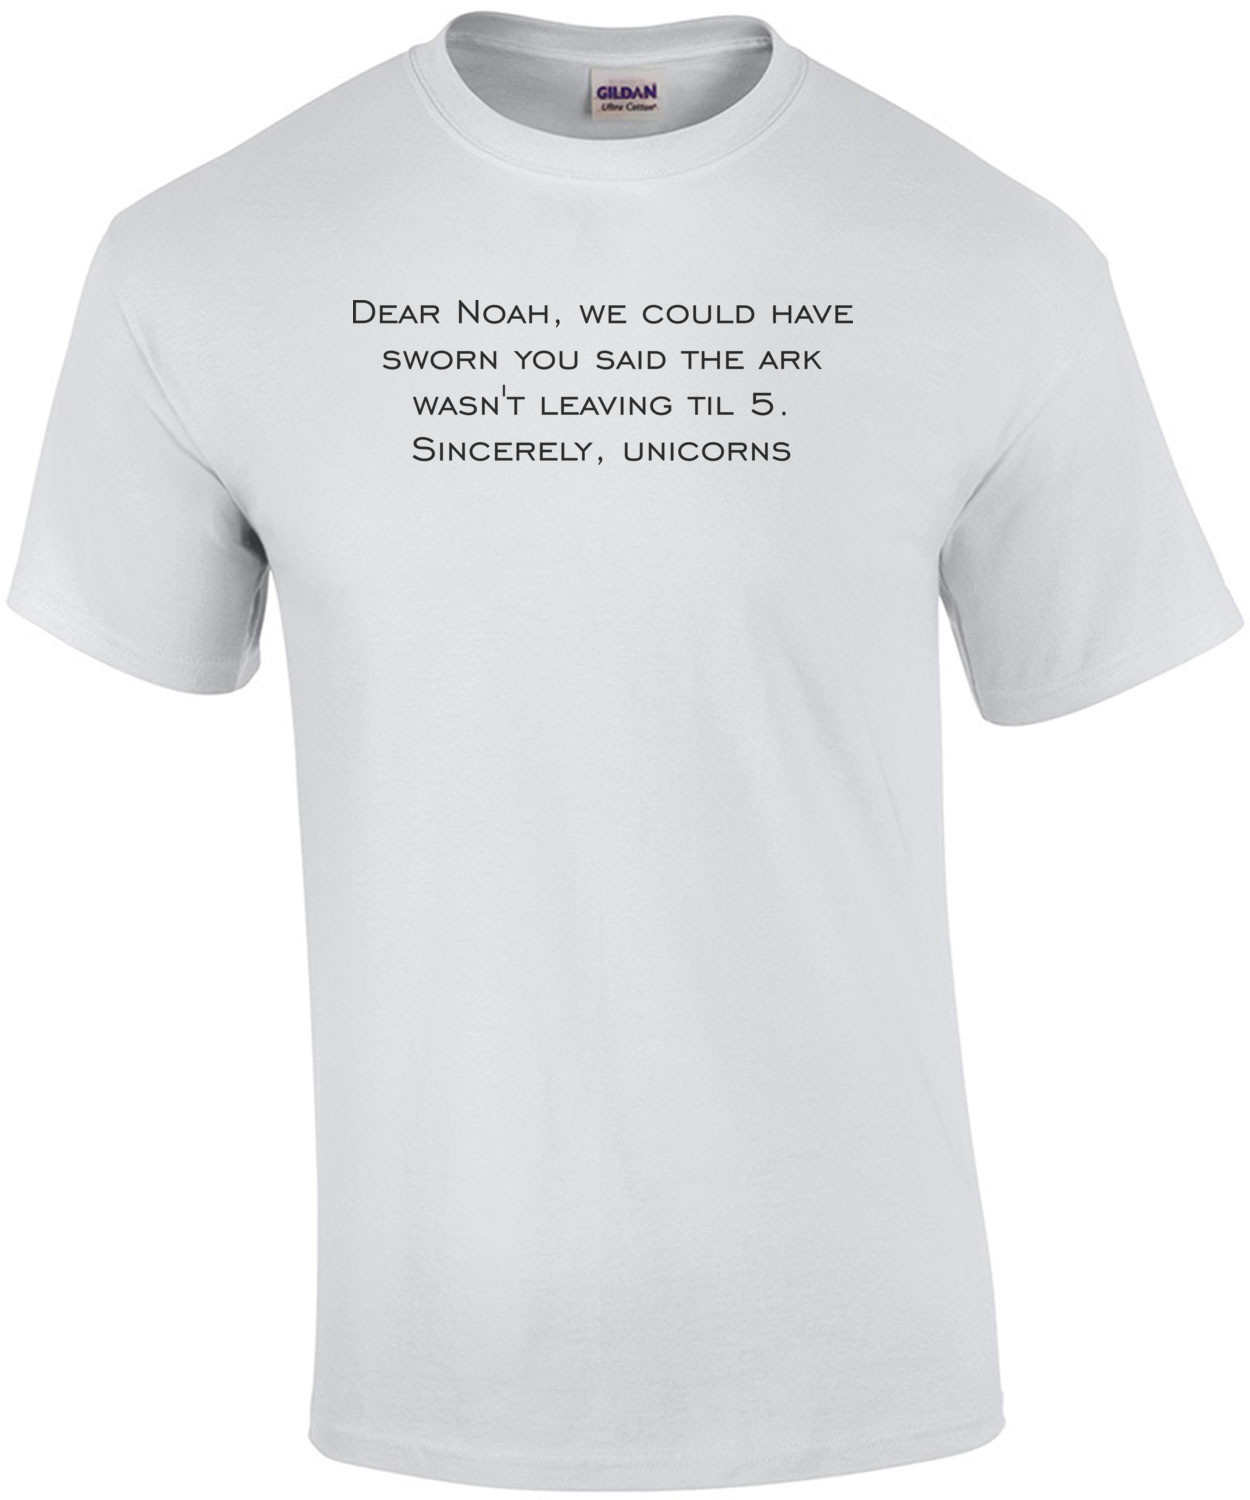 Dear Noah, we could have sworn you said the ark wasn't leaving til 5. Sincerely, unicorns. Funny T-shirt Shirt